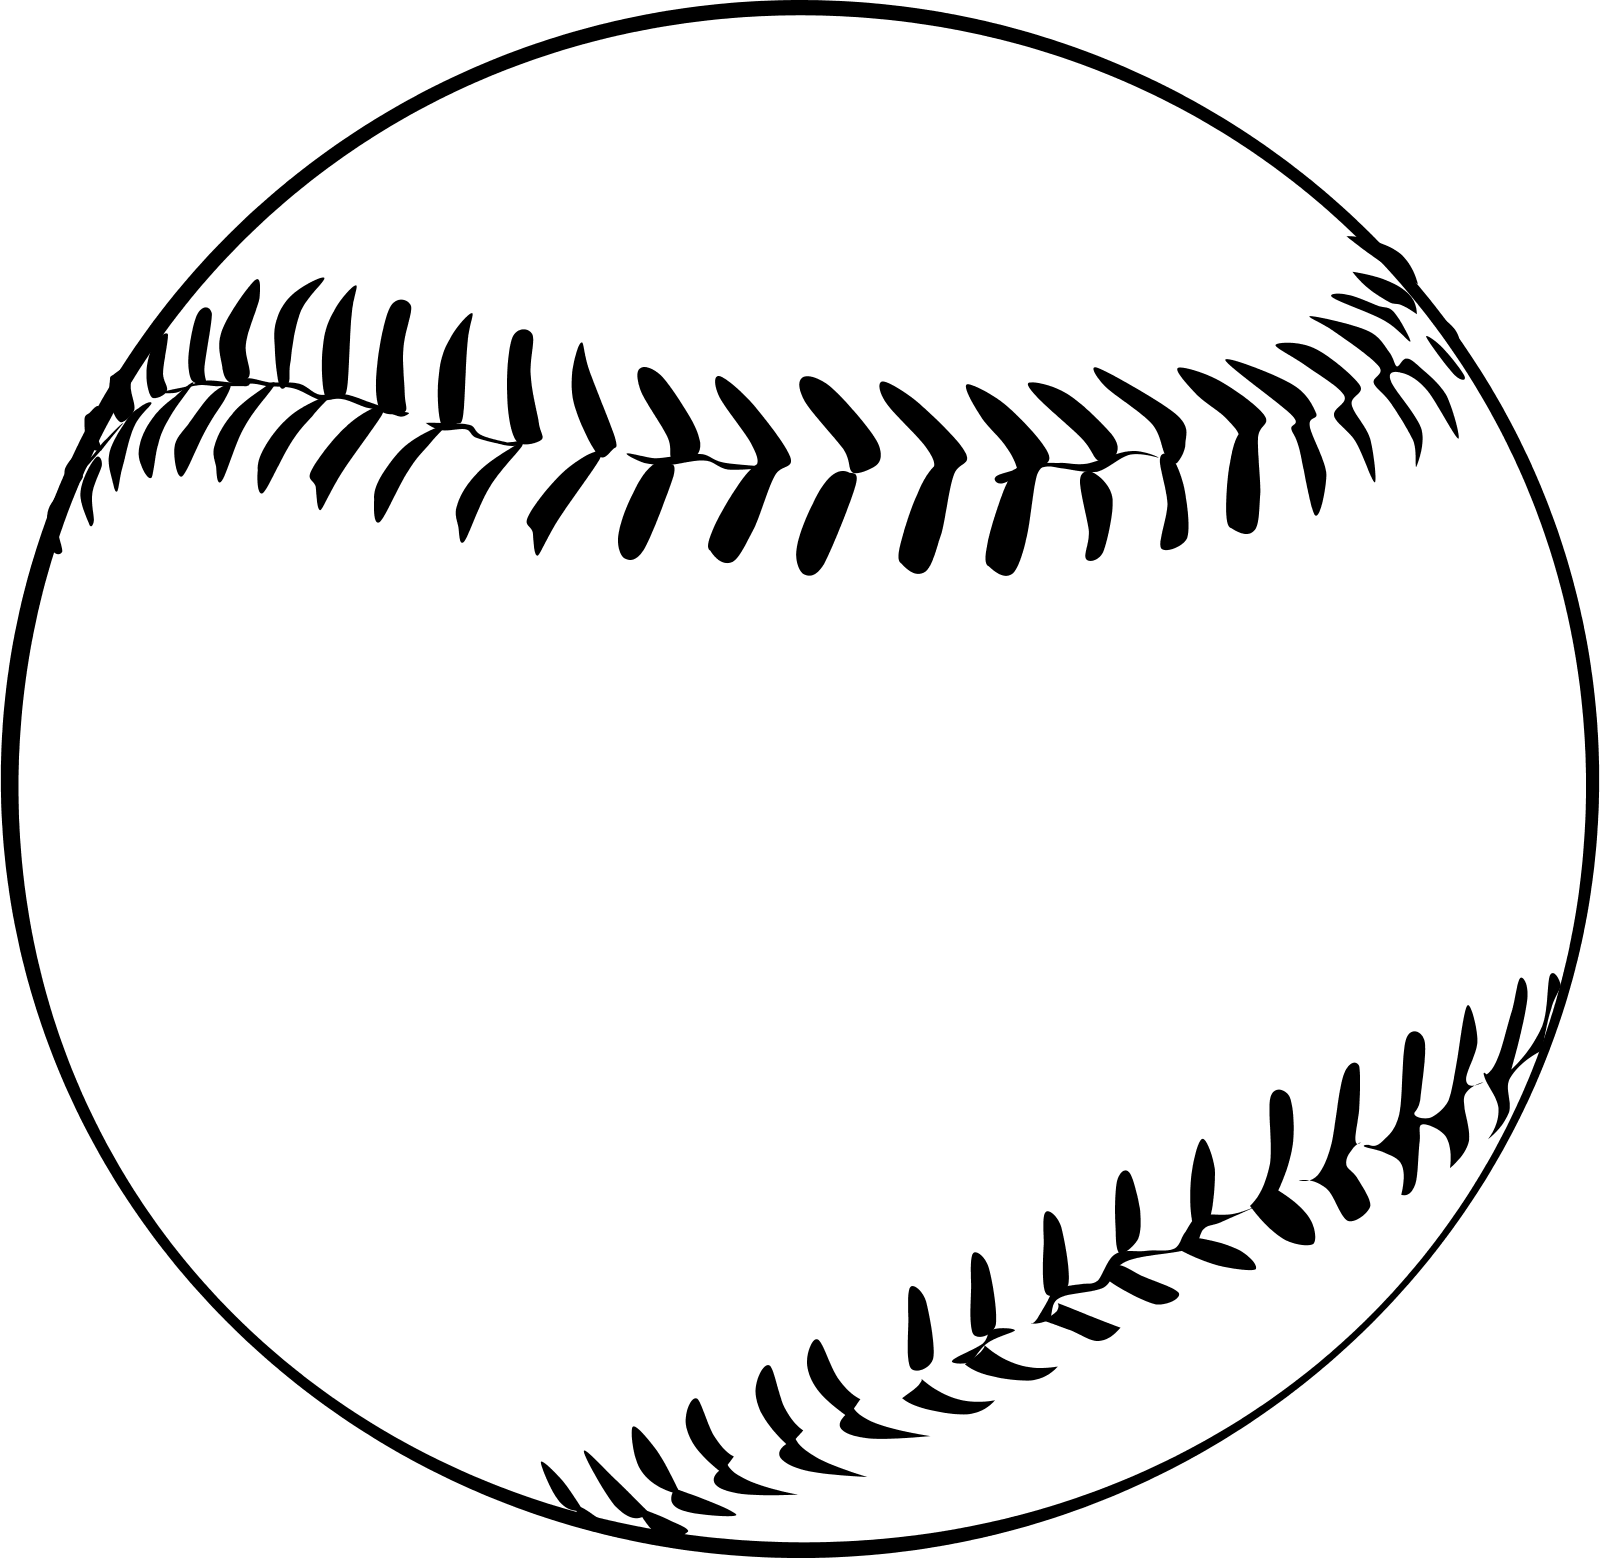 Stitch clipart softball. Baseball black and white